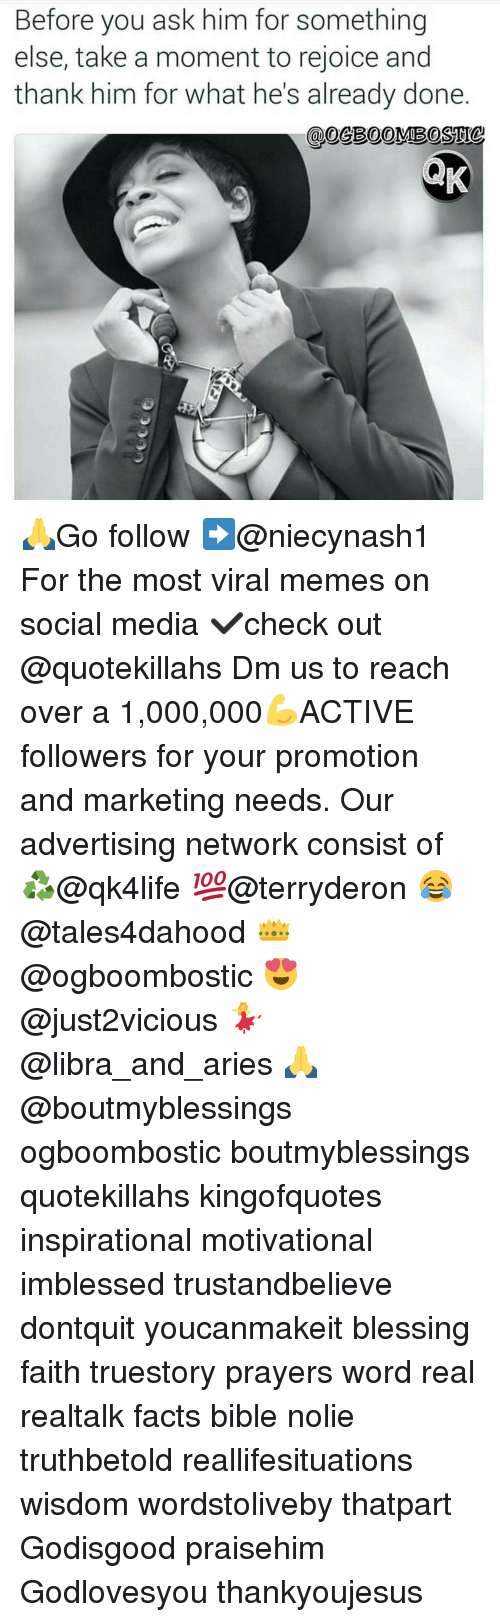 Facts, Memes, and Social Media: Before you ask him for something  else, take a moment to rejoice and  thank him for what he's already done 🙏Go follow ➡@niecynash1 For the most viral memes on social media ✔check out @quotekillahs Dm us to reach over a 1,000,000💪ACTIVE followers for your promotion and marketing needs. Our advertising network consist of ♻@qk4life 💯@terryderon 😂@tales4dahood 👑@ogboombostic 😍@just2vicious 💃@libra_and_aries 🙏@boutmyblessings ogboombostic boutmyblessings quotekillahs kingofquotes inspirational motivational imblessed trustandbelieve dontquit youcanmakeit blessing faith truestory prayers word real realtalk facts bible nolie truthbetold reallifesituations wisdom wordstoliveby thatpart Godisgood praisehim Godlovesyou thankyoujesus